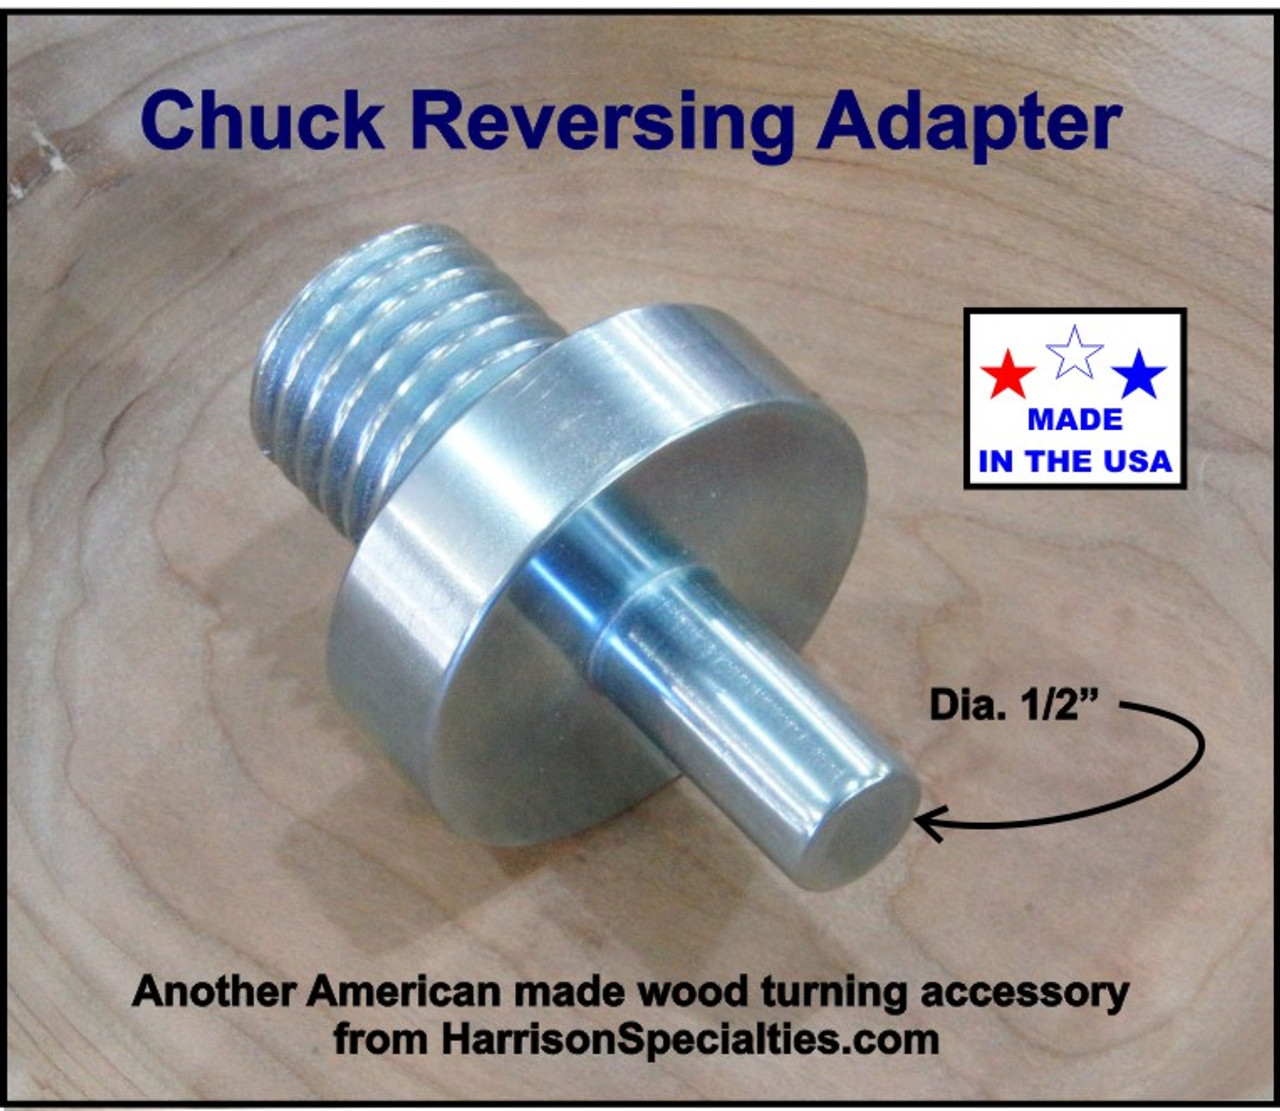 Chuck Reversing Adapter for wood turning lathe